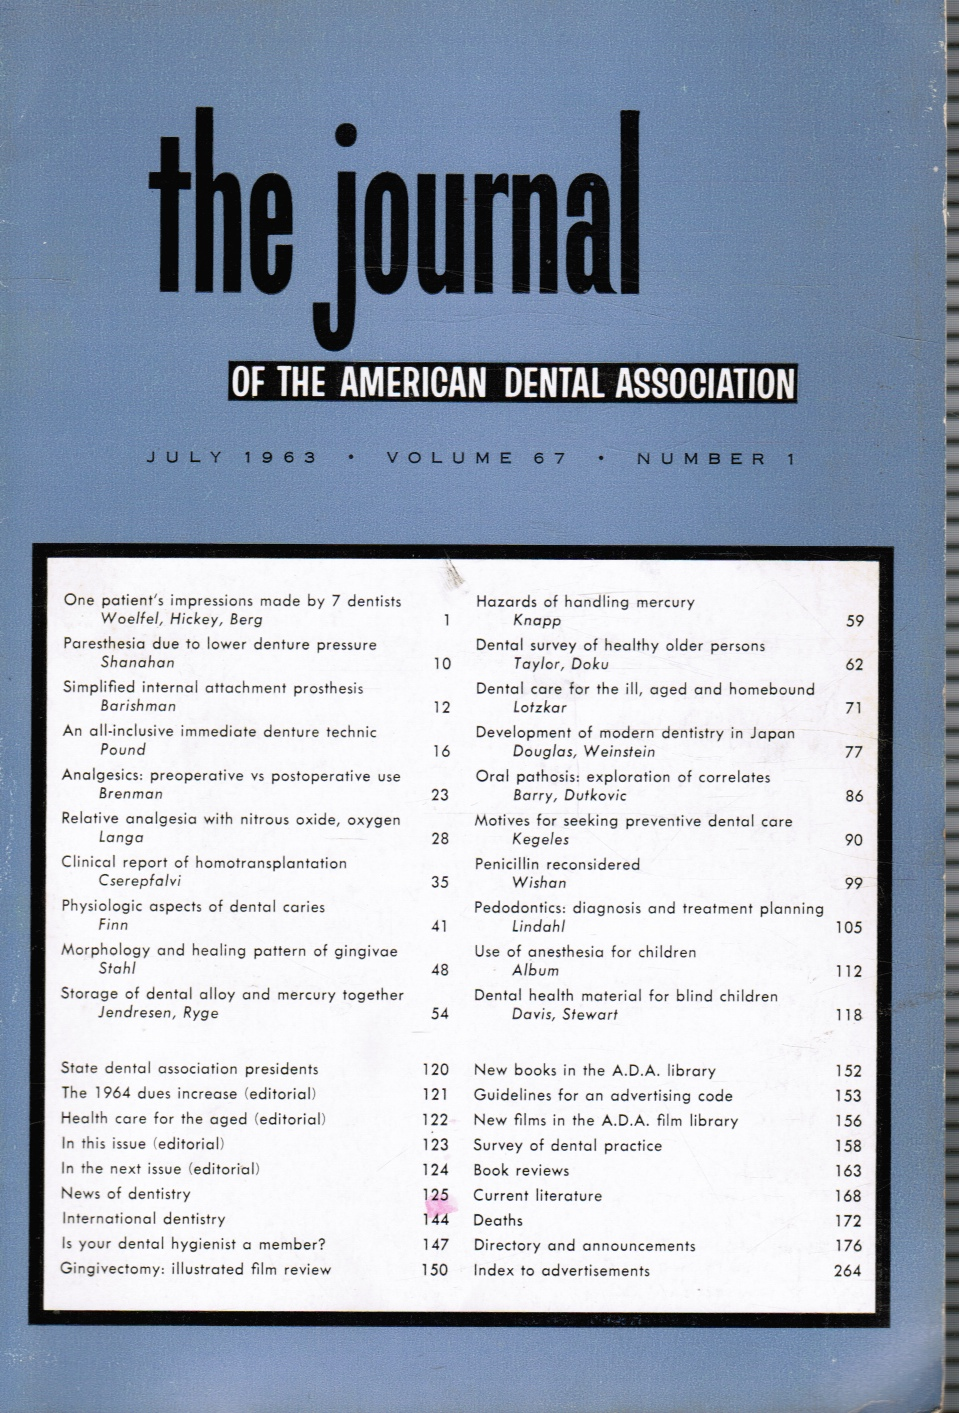 Image for The Journal of the American Dental Association: July 1963 JADA